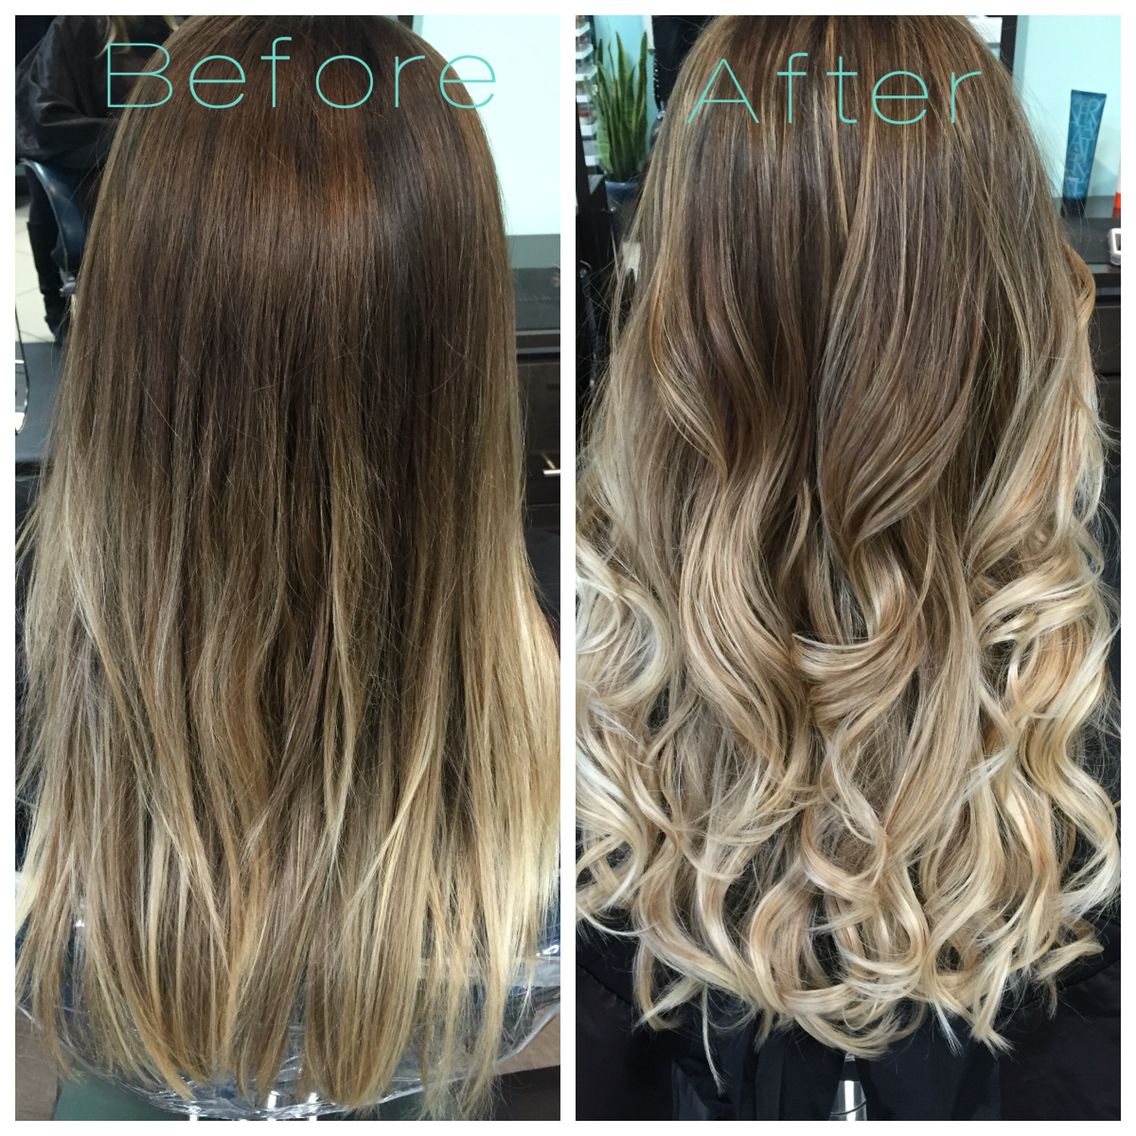 Before And After Brightened Up This 6 Month Old Ombr Olaplex